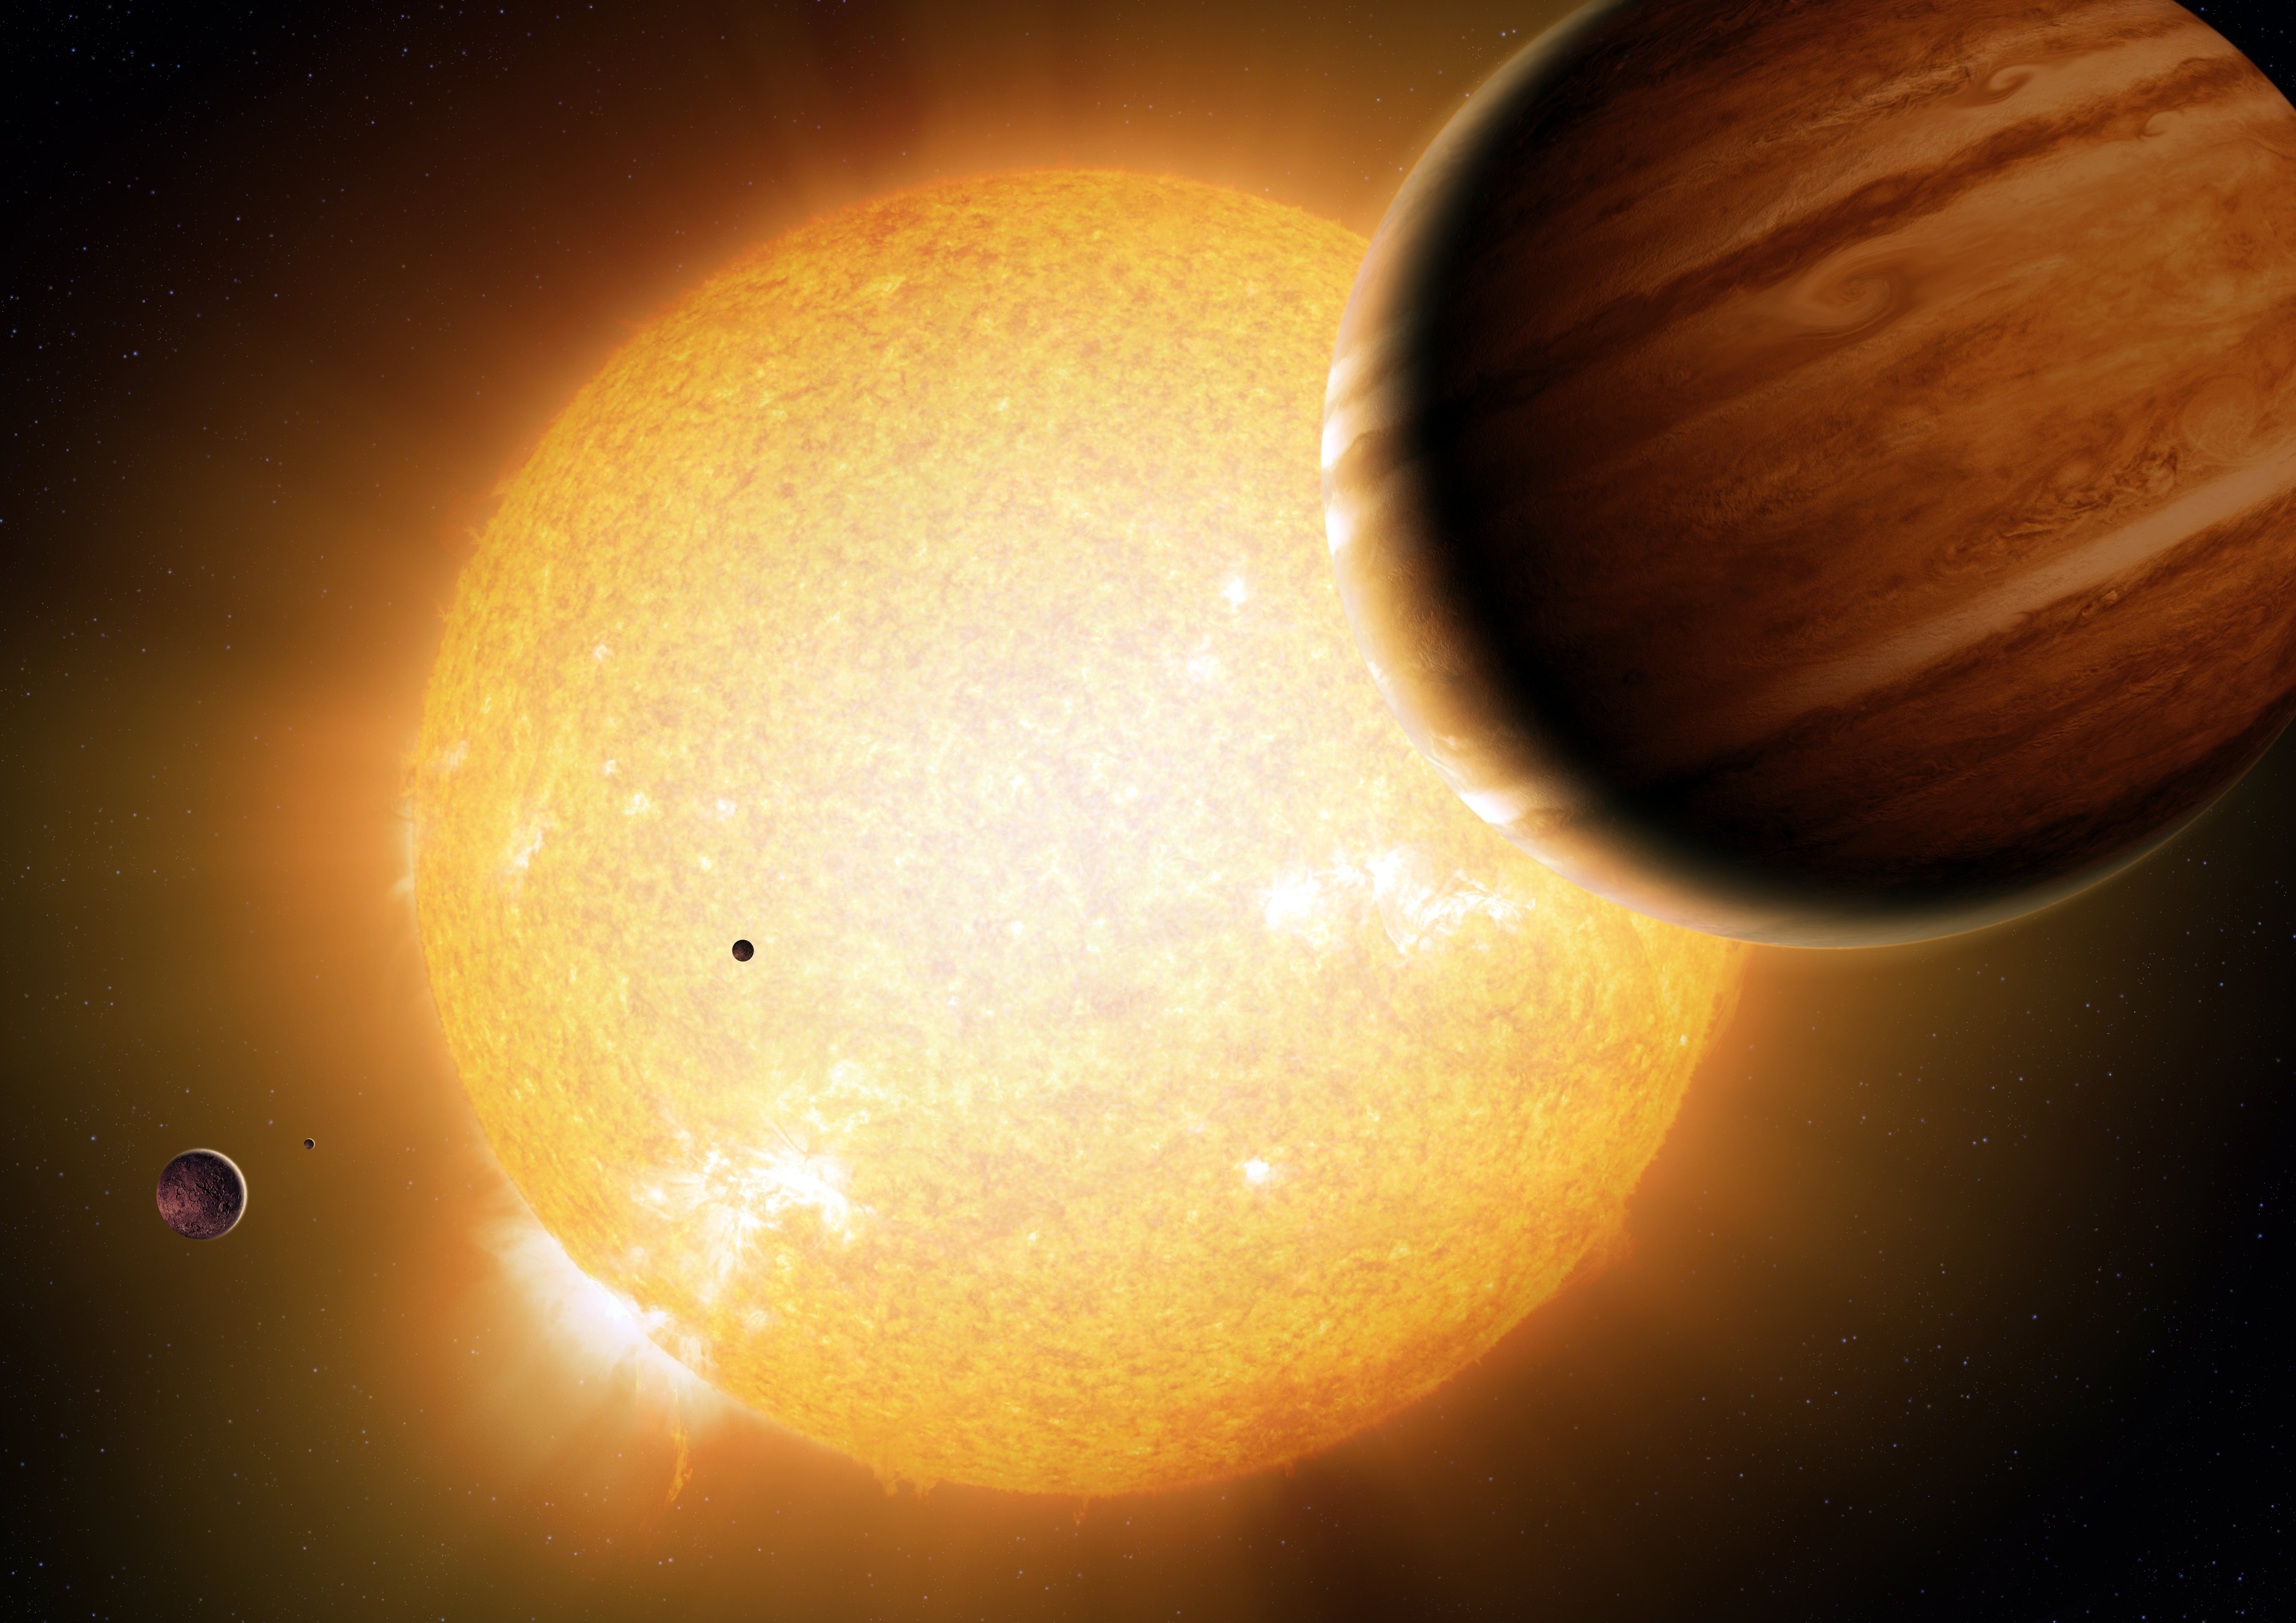 An artist's portrayal of a Warm Jupiter gas-giant planet (r.) in orbit around its parent star, along with smaller companion planets. Image credit: Detlev Van Ravenswaay/Science Photo Library